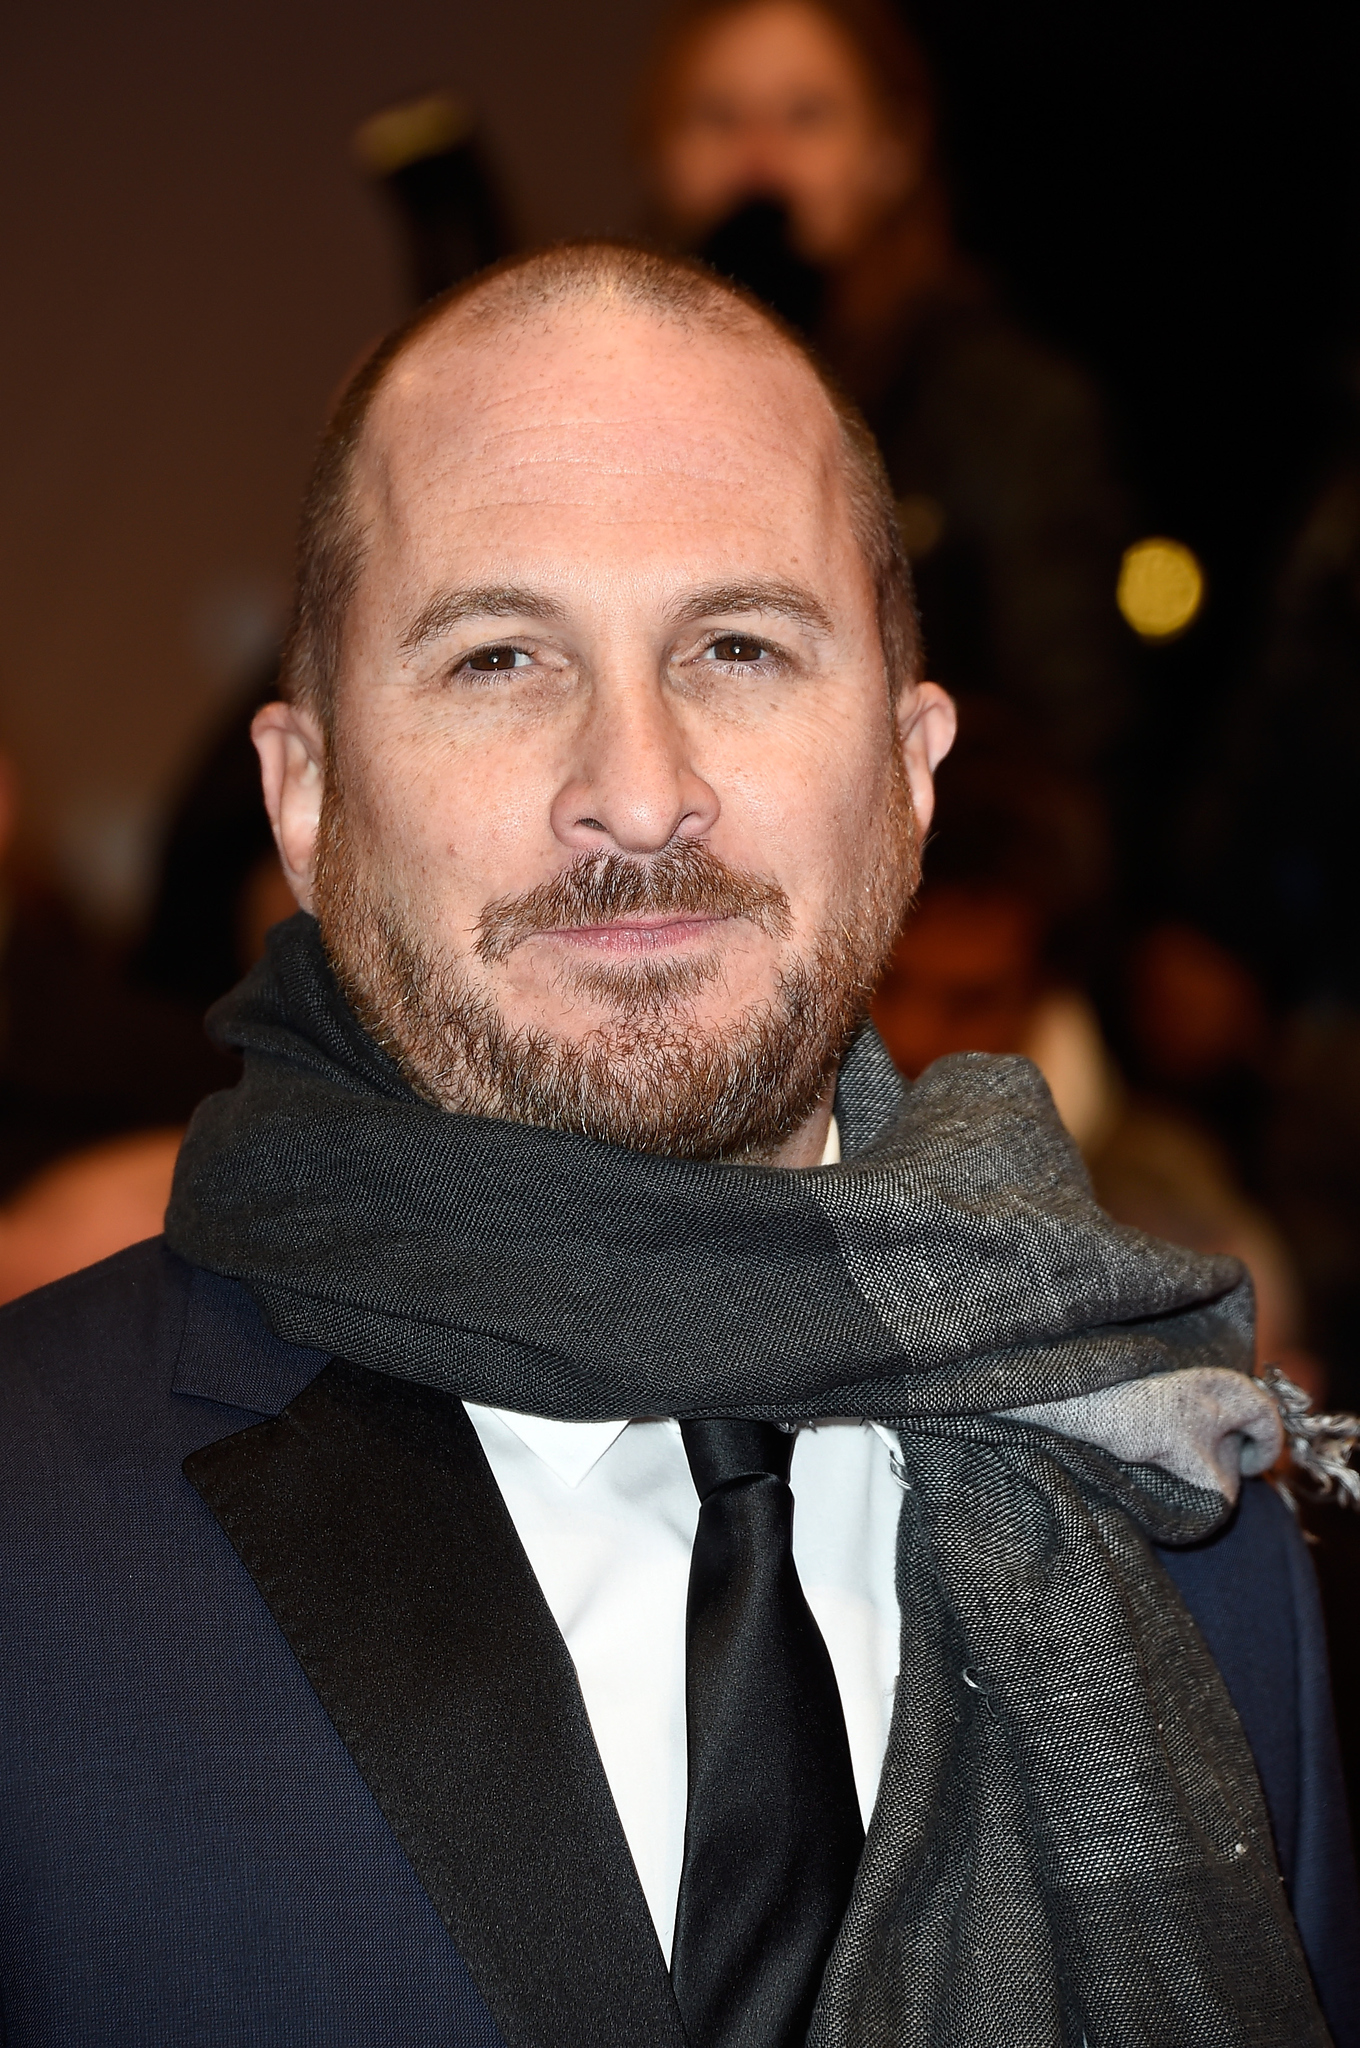 Darren Aronofsky at an event for Nadie quiere la noche (2015)